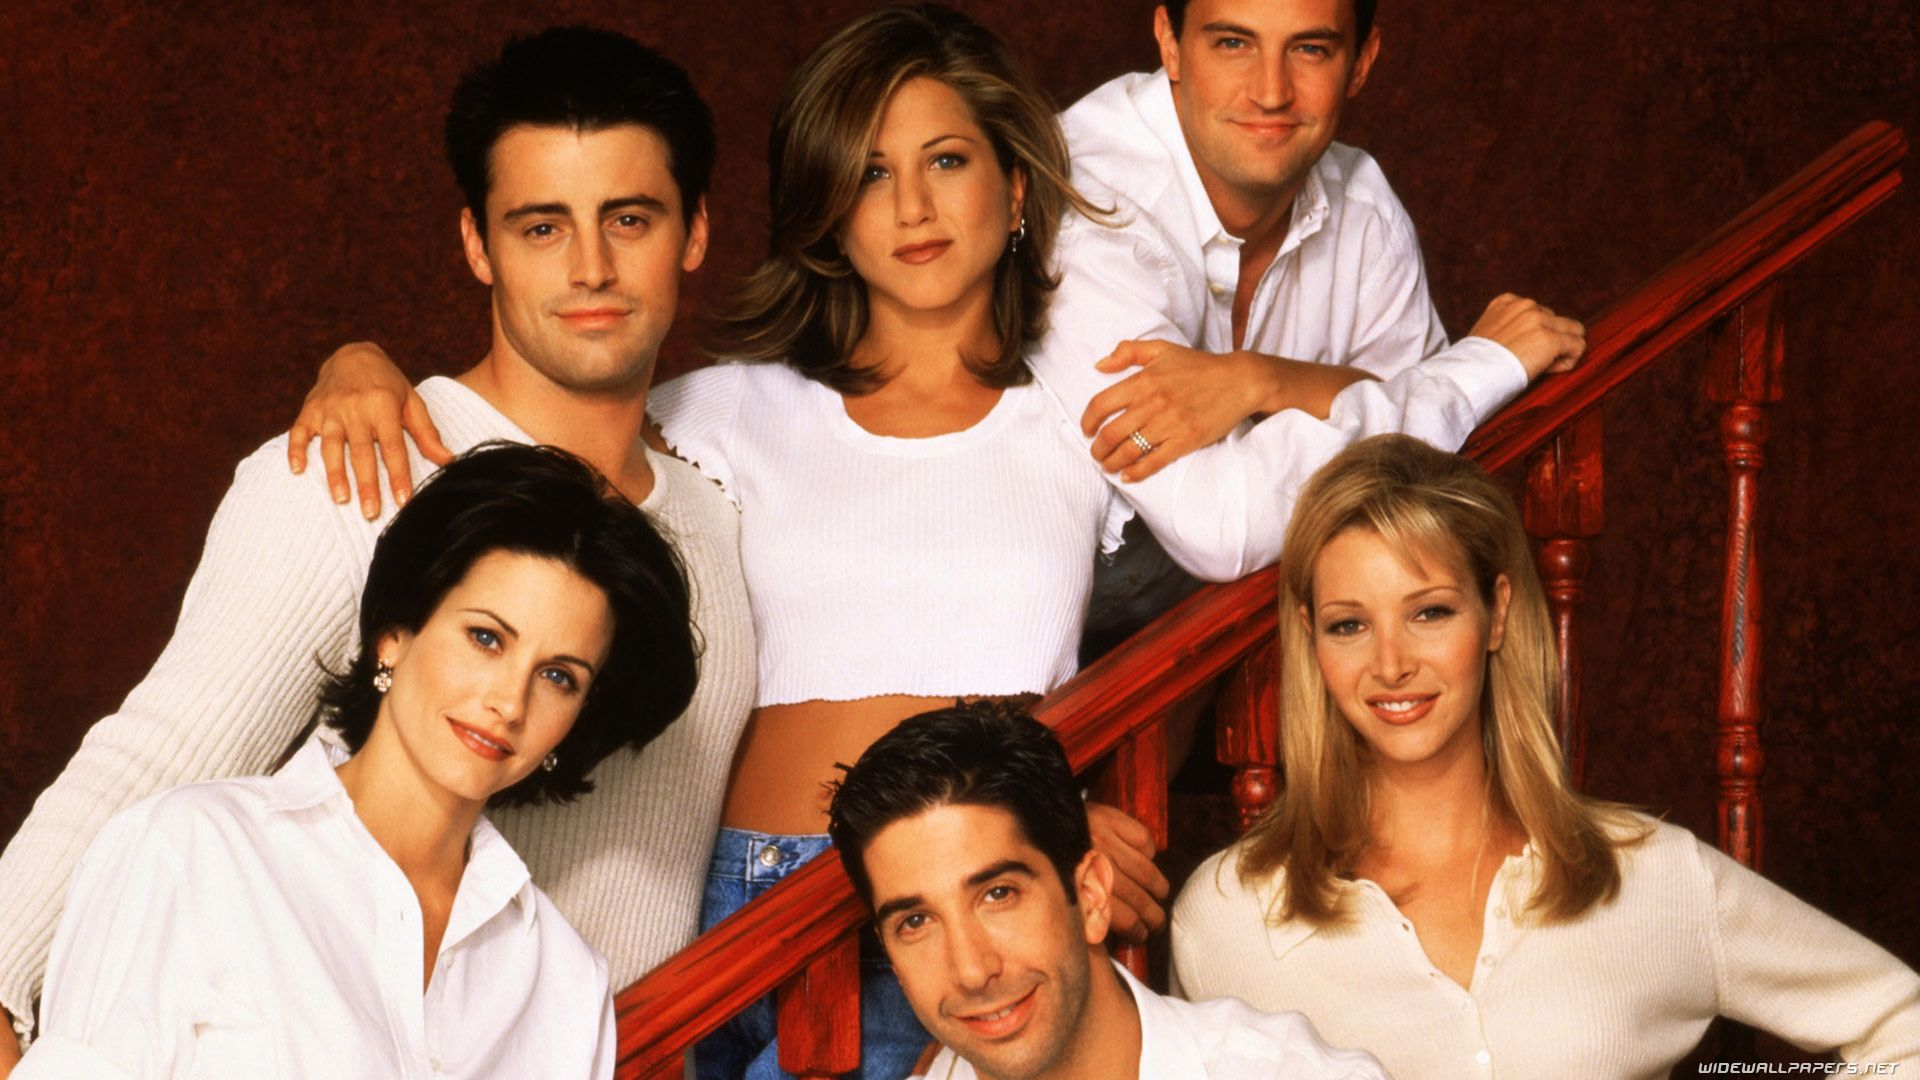 Friends Wallpaper HD Characters Comedy Series TV 1920x1080